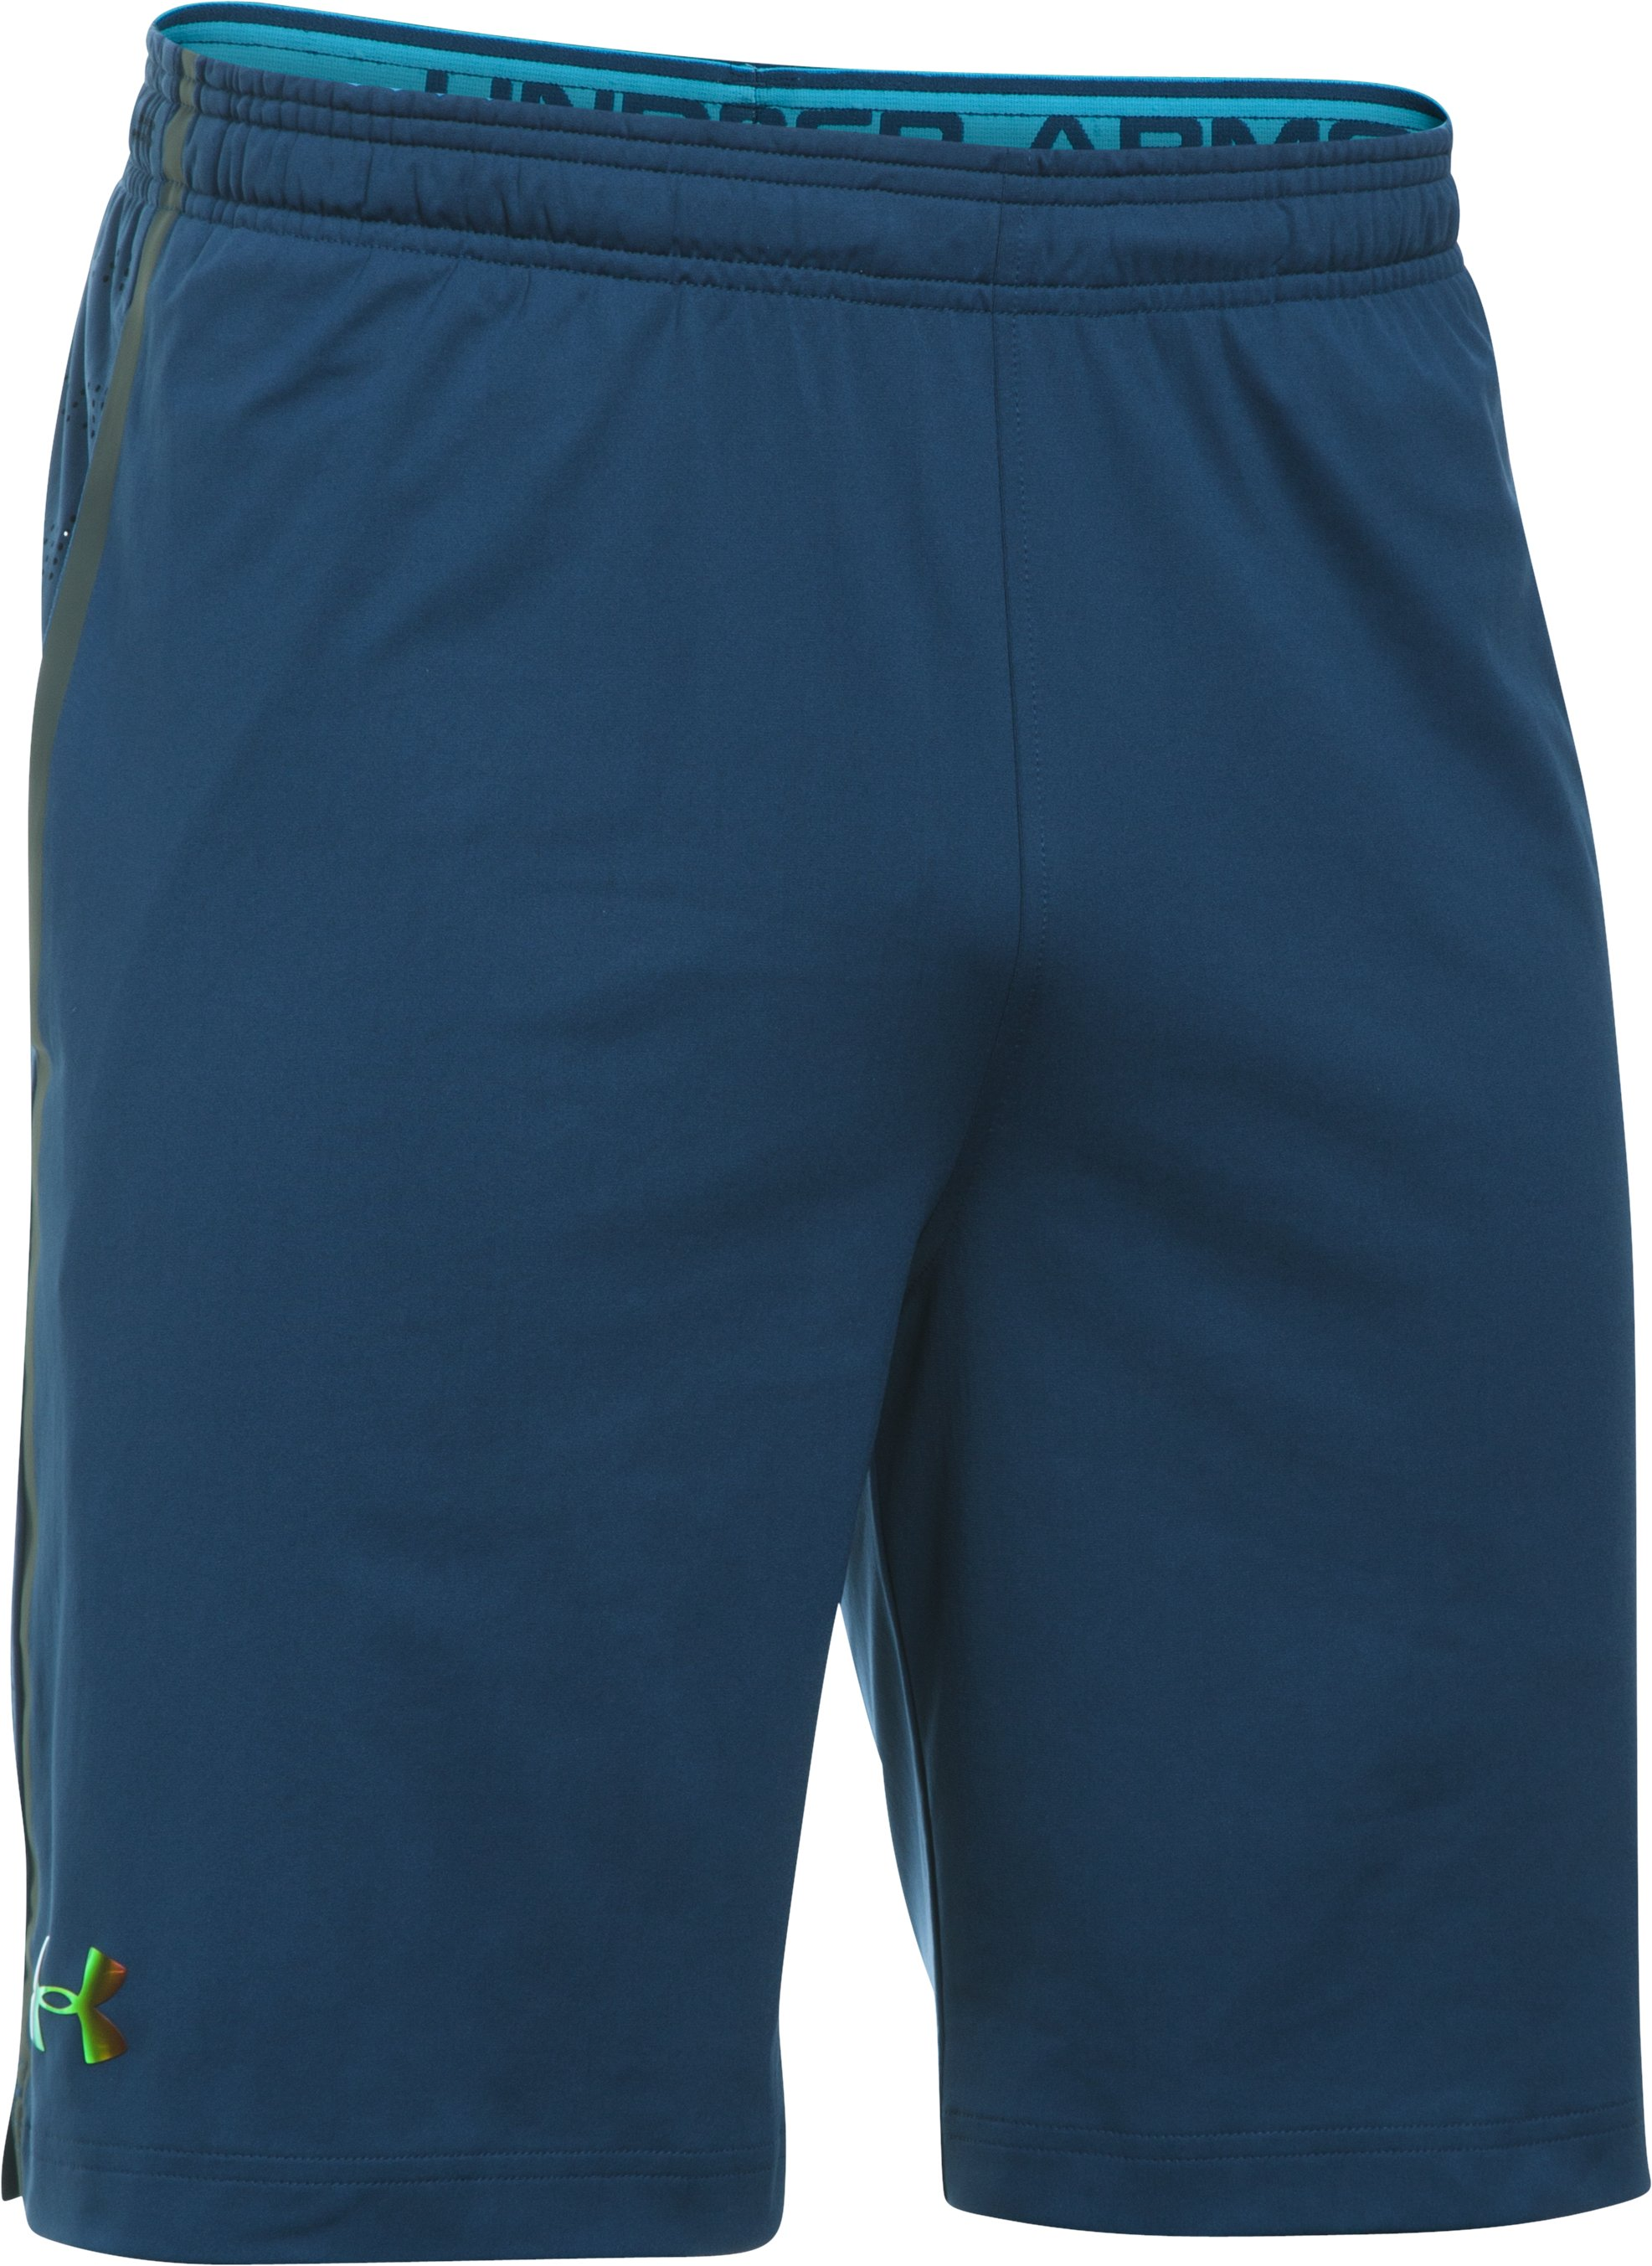 Men's UA Road To Rio Kit Shorts, BLACKOUT NAVY, undefined